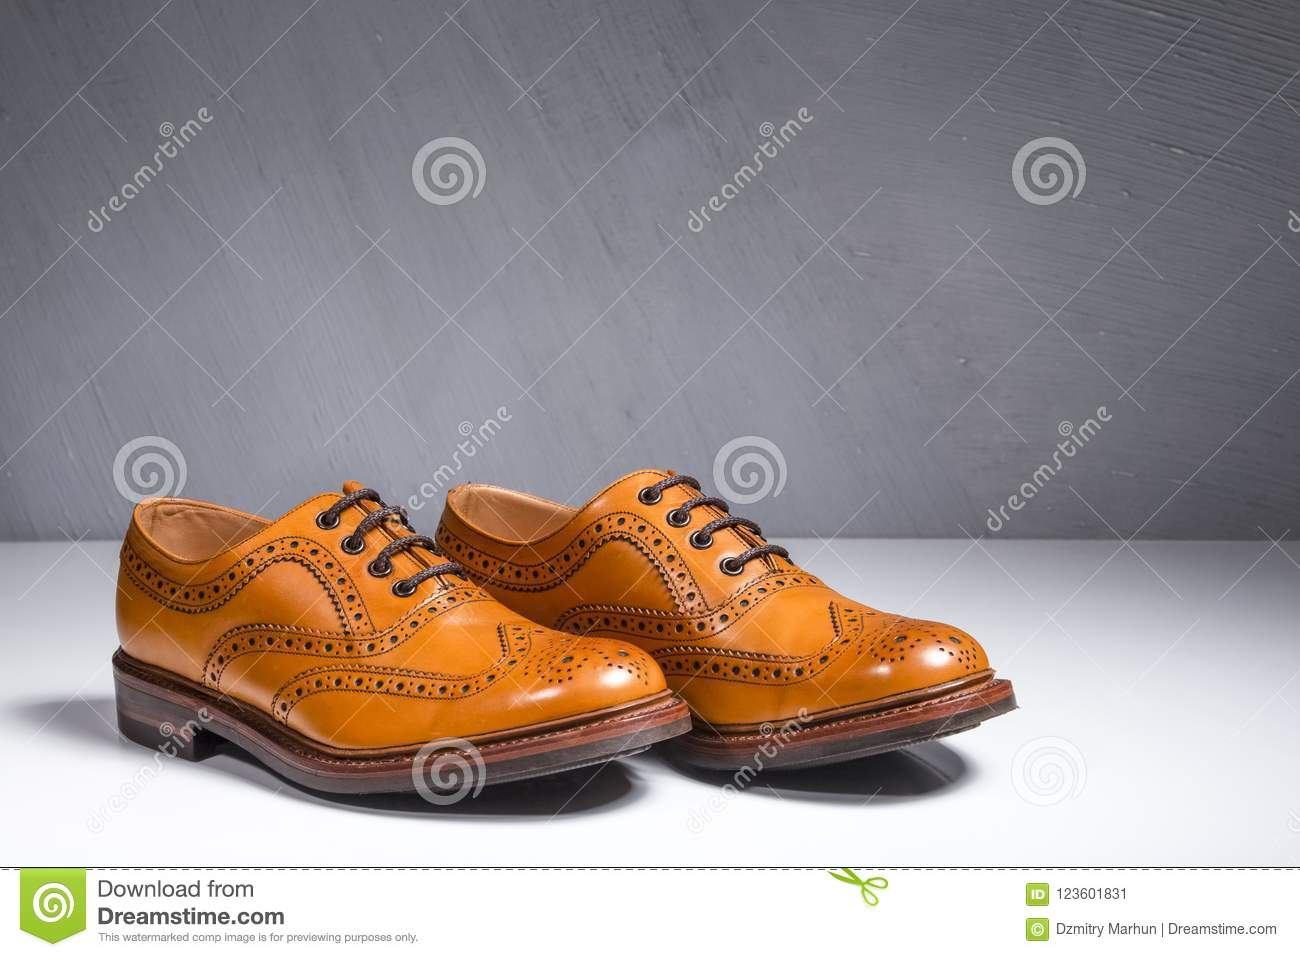 Closeup of Pair of Luxury Male Full Broggued Tan Leather Oxfords